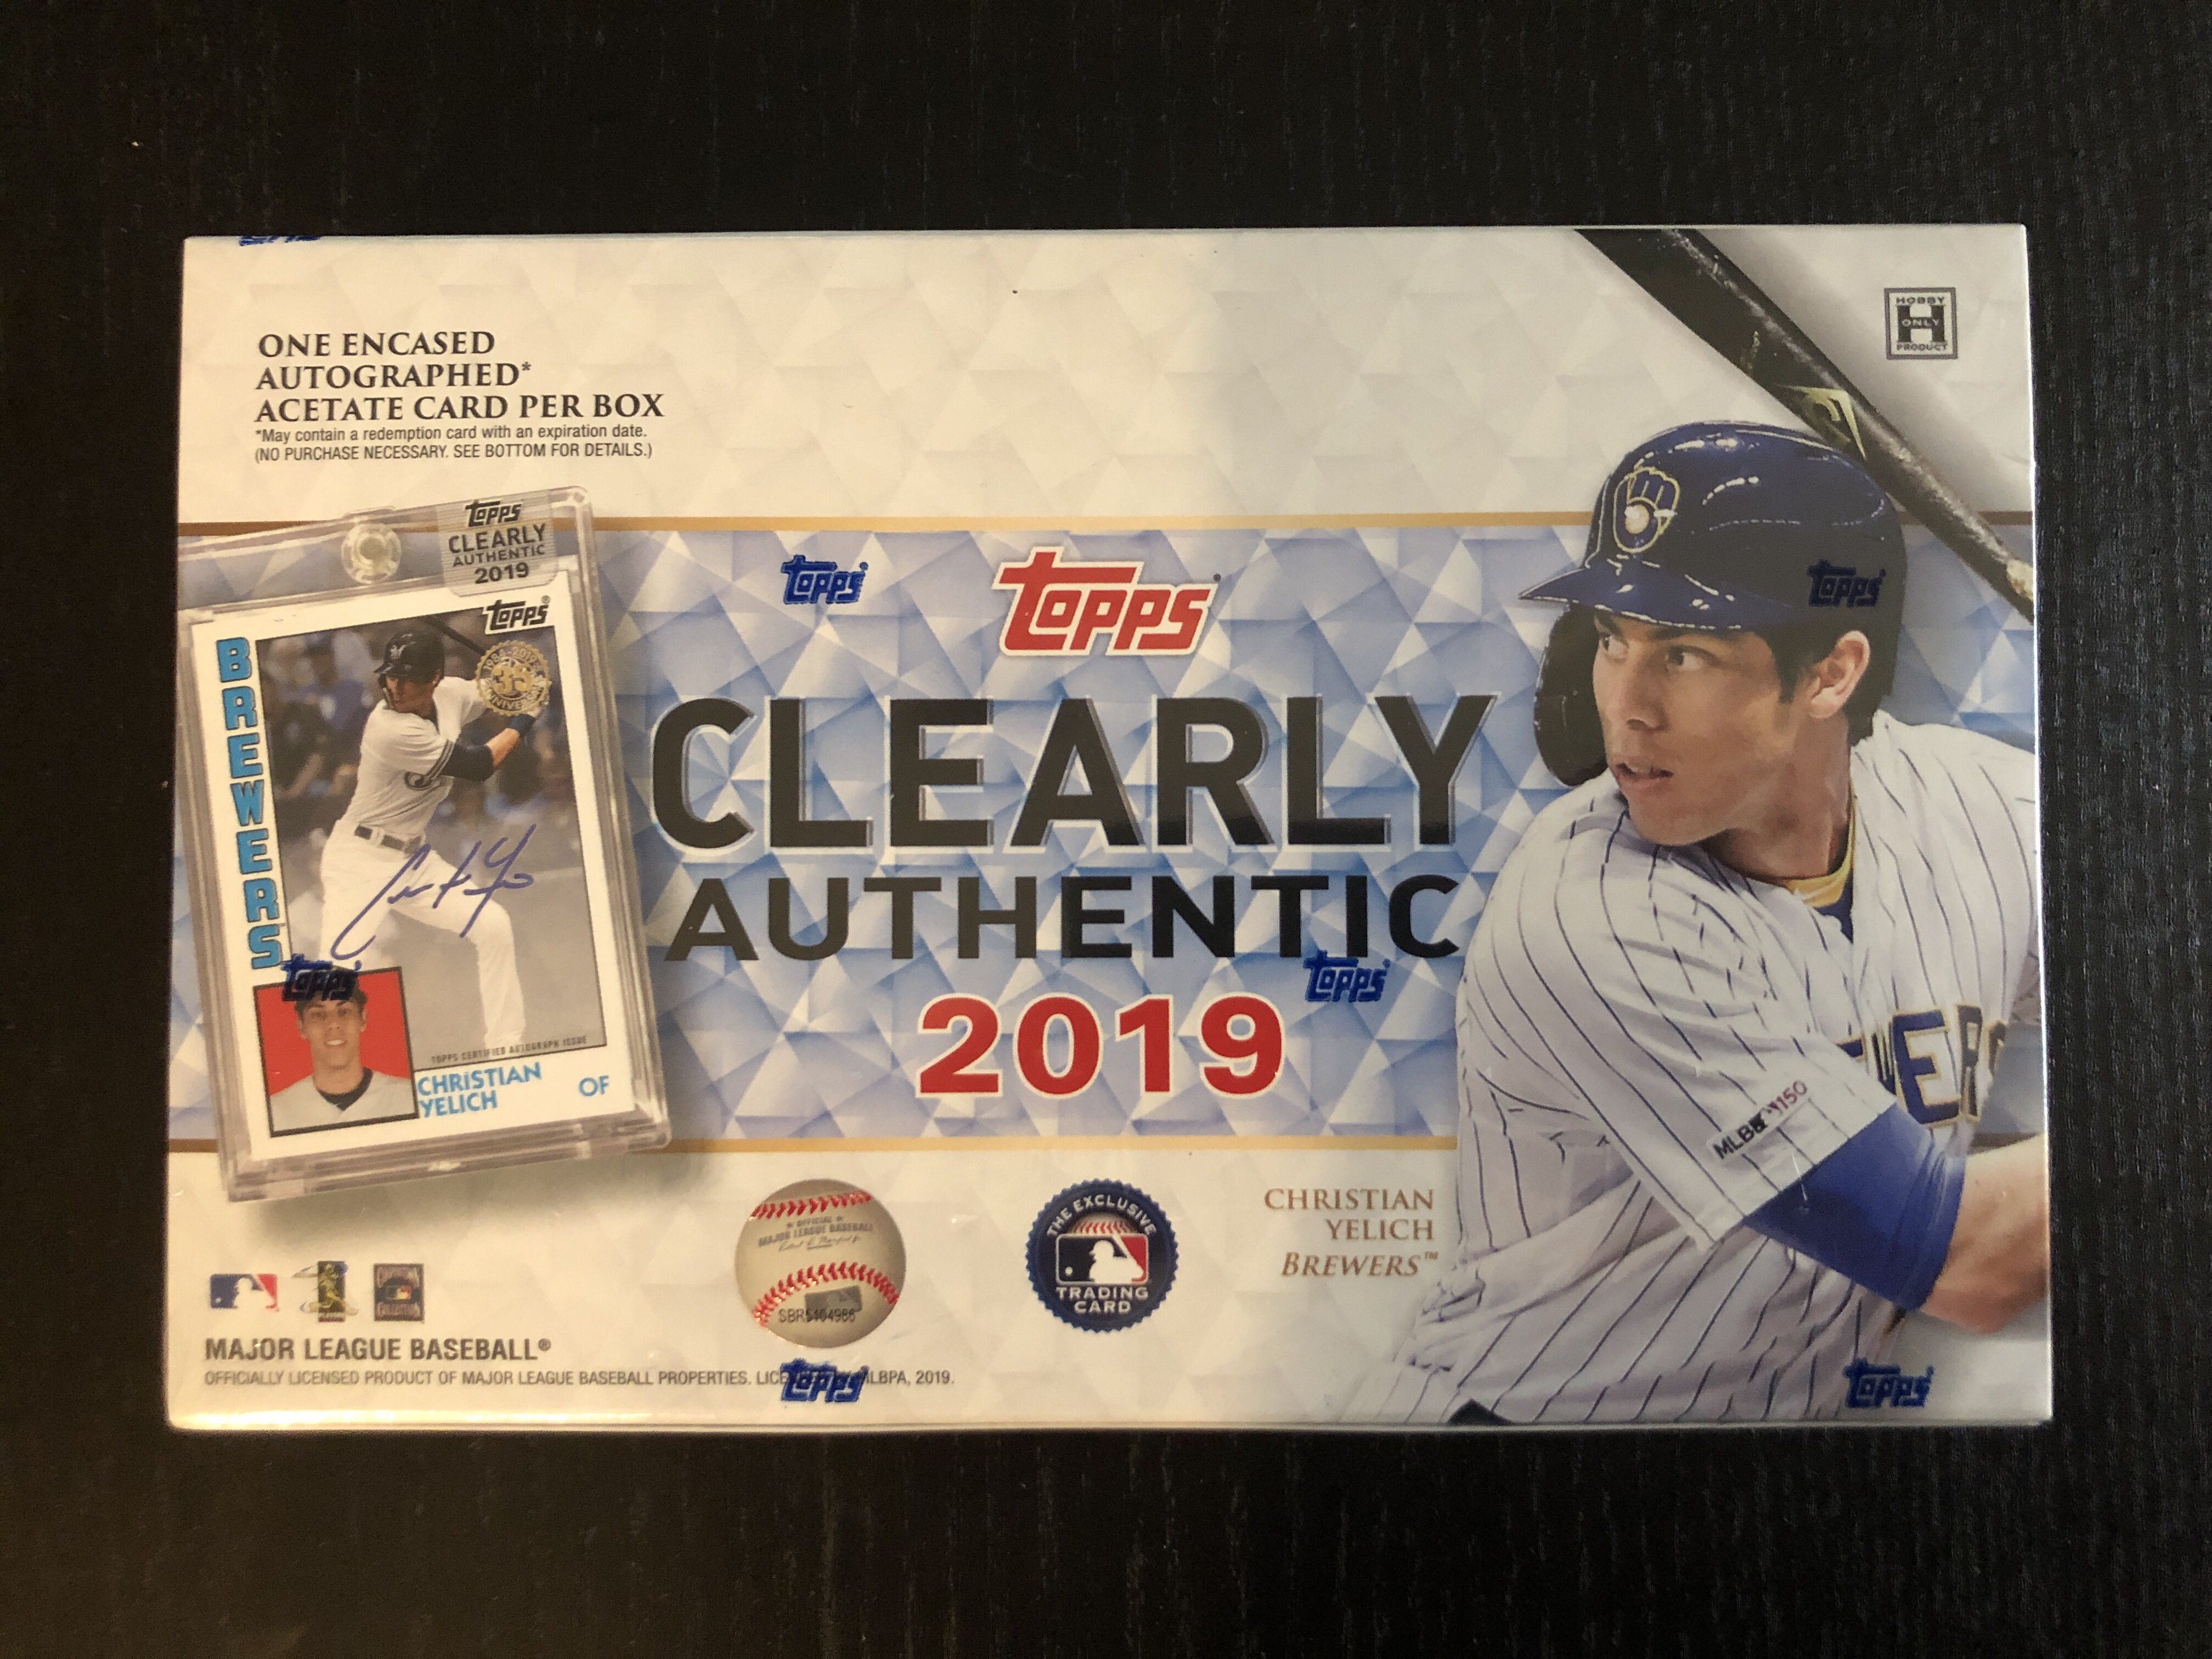 Inside the Pack: 2019 Topps Clearly Authentic Review